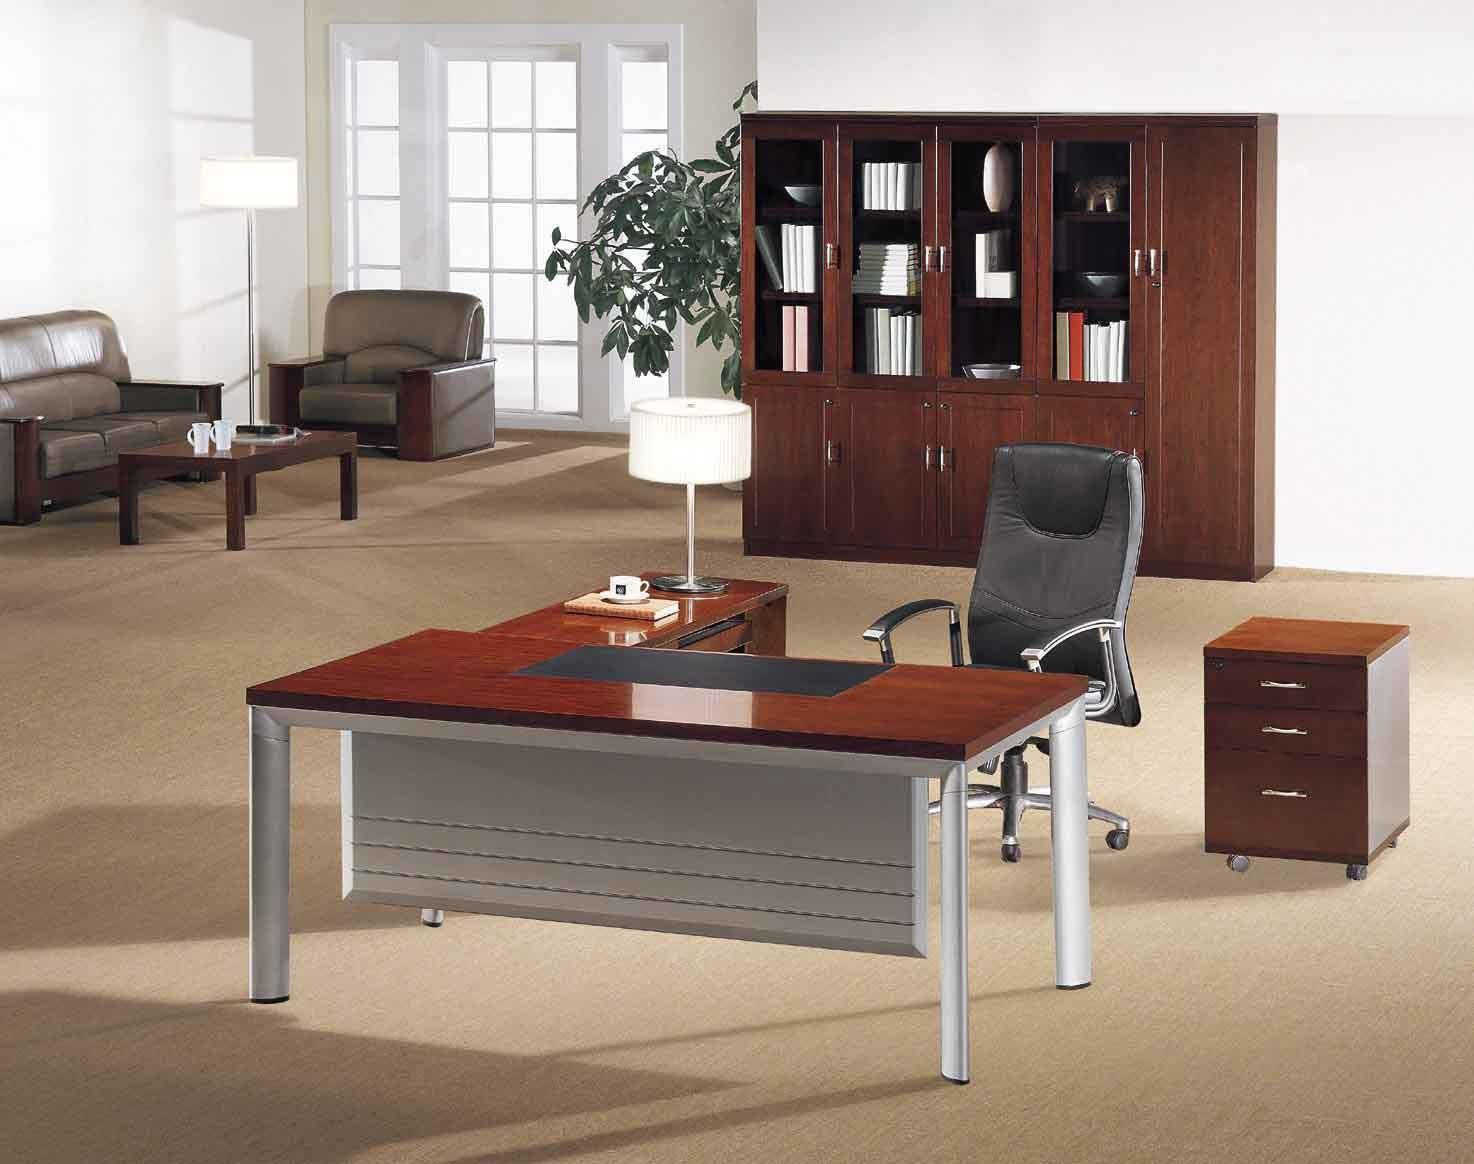 Minimalist Home Office Desk Wooden Top Affordable Modern